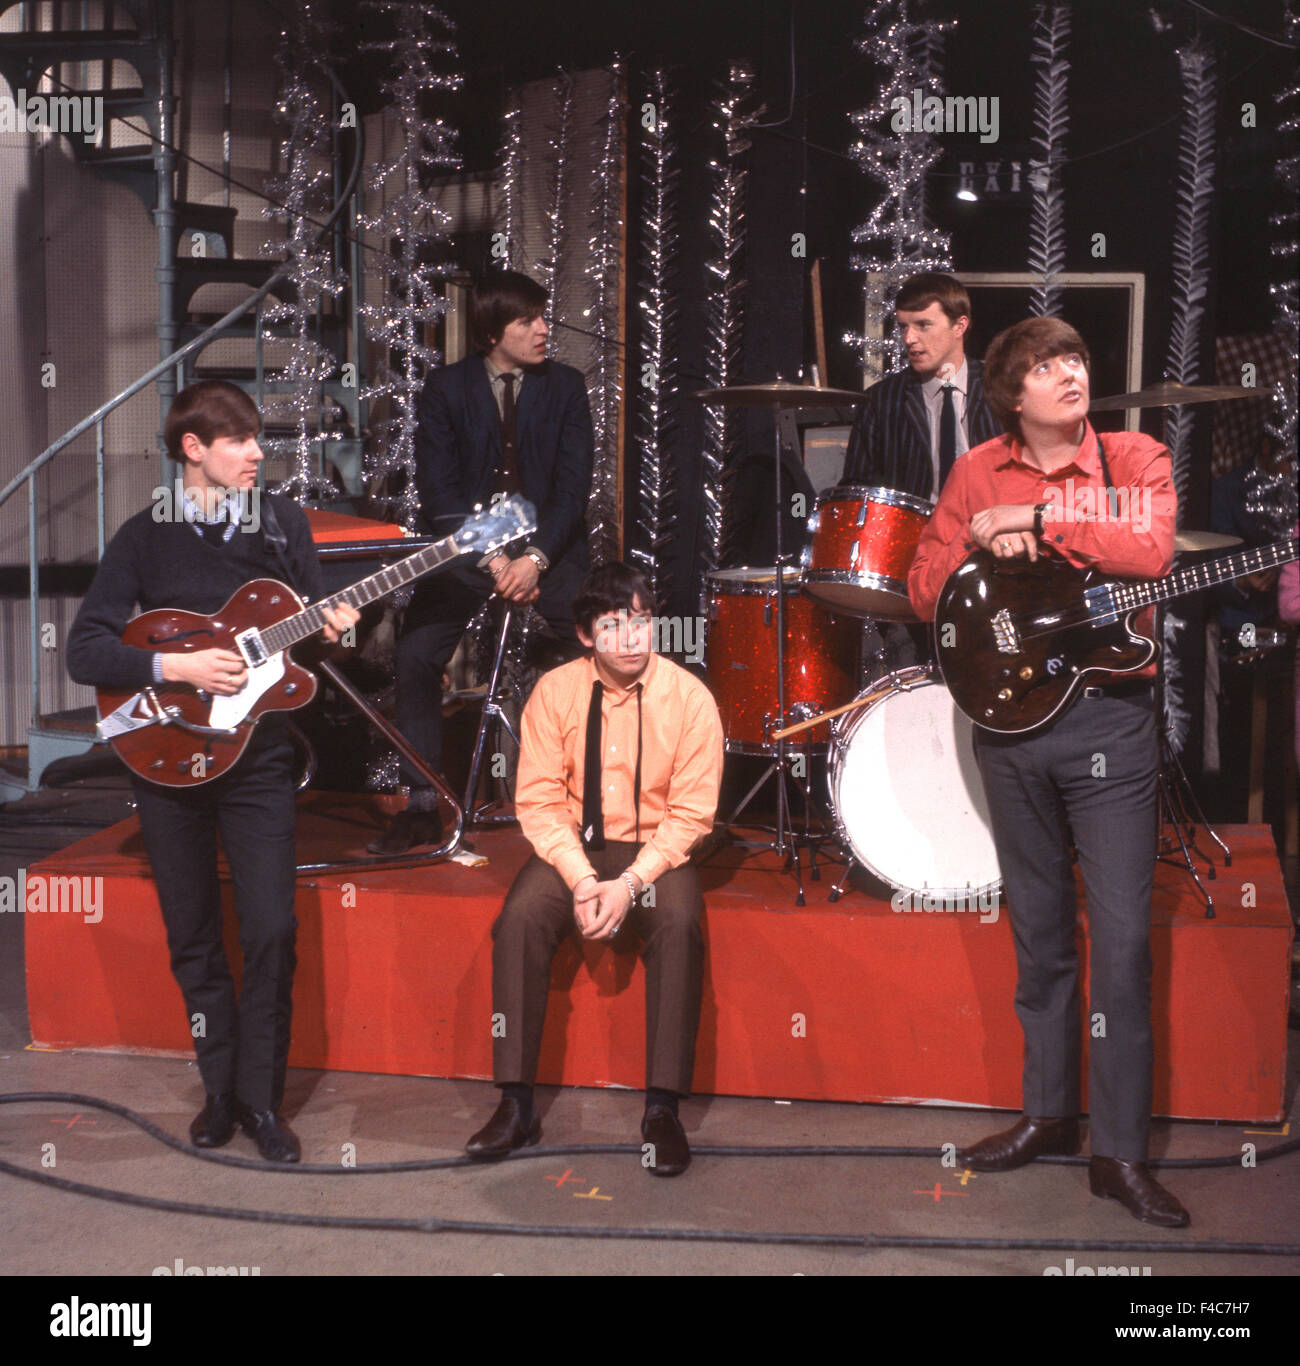 Image of: Skiffledog The Animals Uk Pop Group In 1966 From Left Hilton Valentine Alan Price Eric Burdon John Steel Chas Chandler Photo Tony Gale Guitar International Magazine The Animals Uk Pop Group In 1966 From Left Hilton Valentine Alan